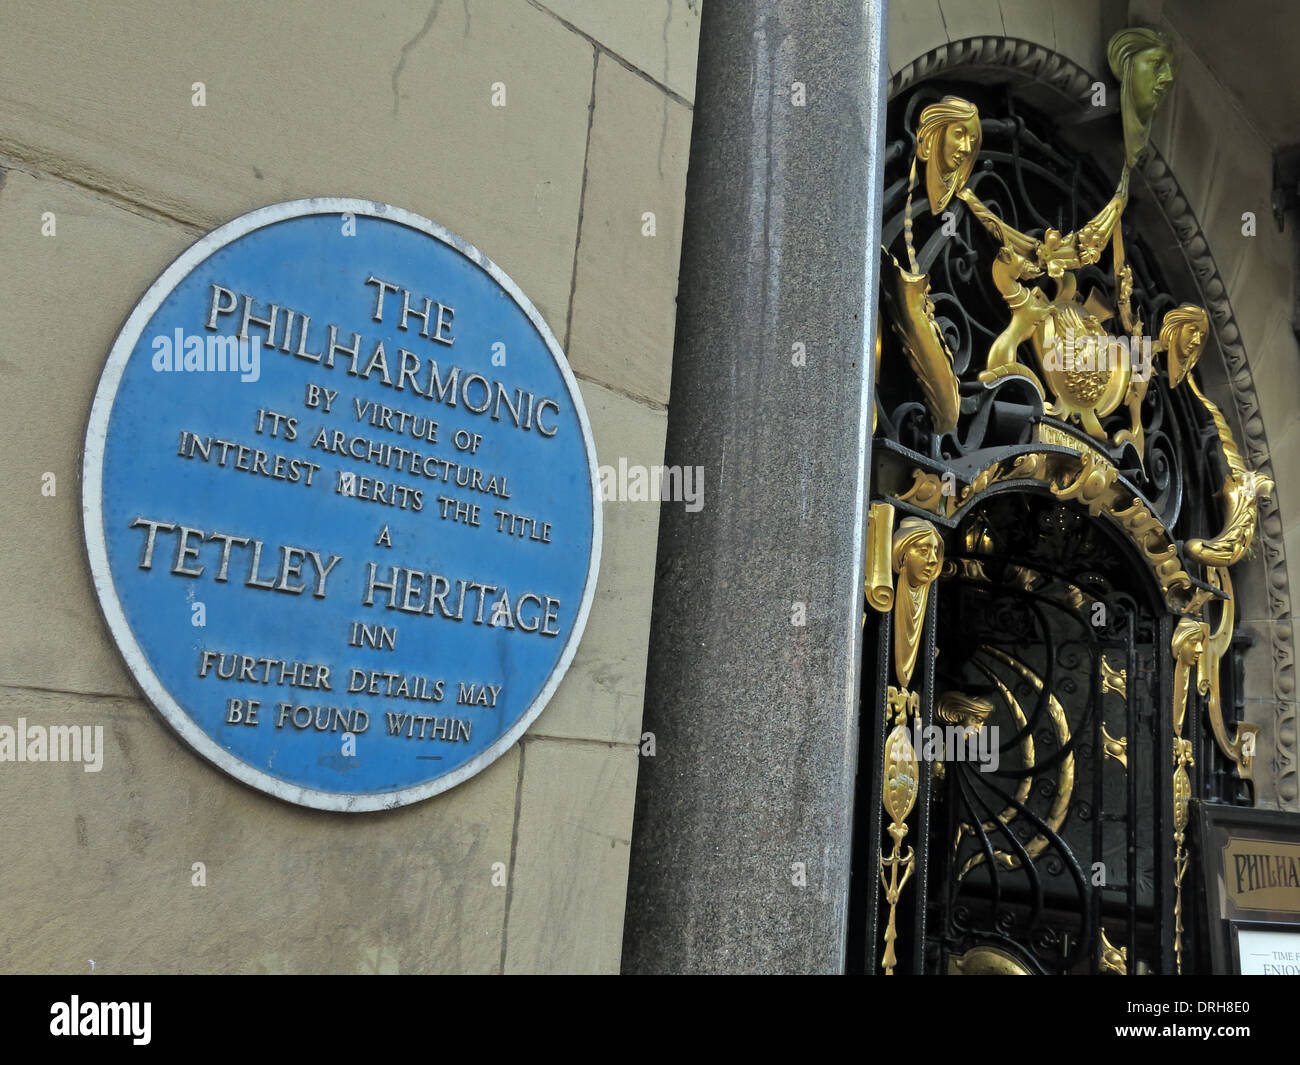 Entrance to the Philharmonic Dining Rooms tavern in Gold Liverpool maritime England UK - Blue Heritage Plaque Stock Photo